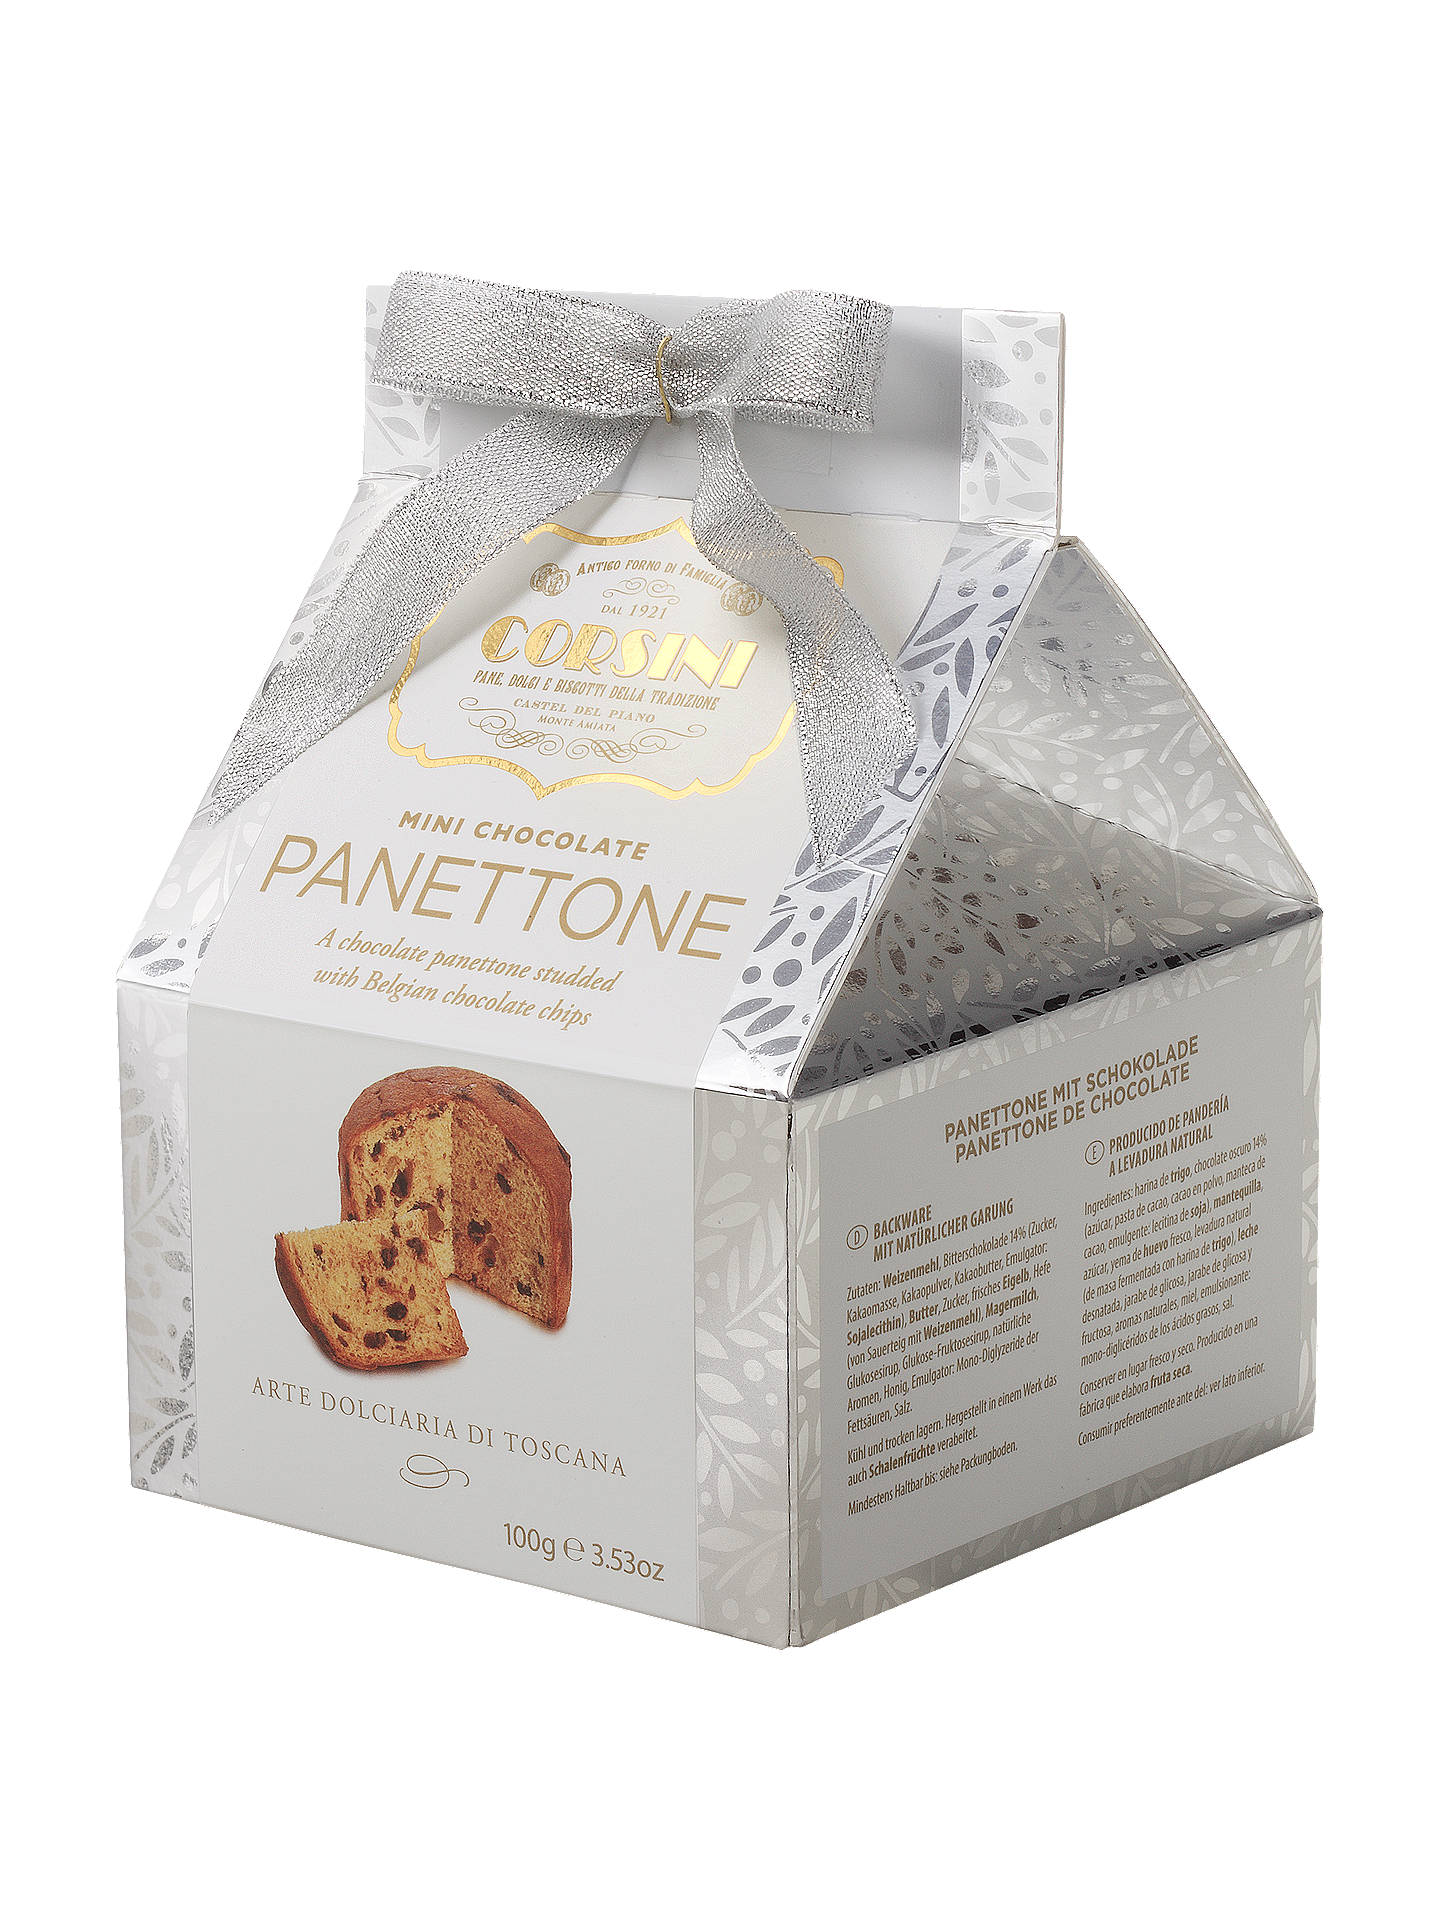 Corsini Mini Chocolate Panettone 100g At John Lewis Partners